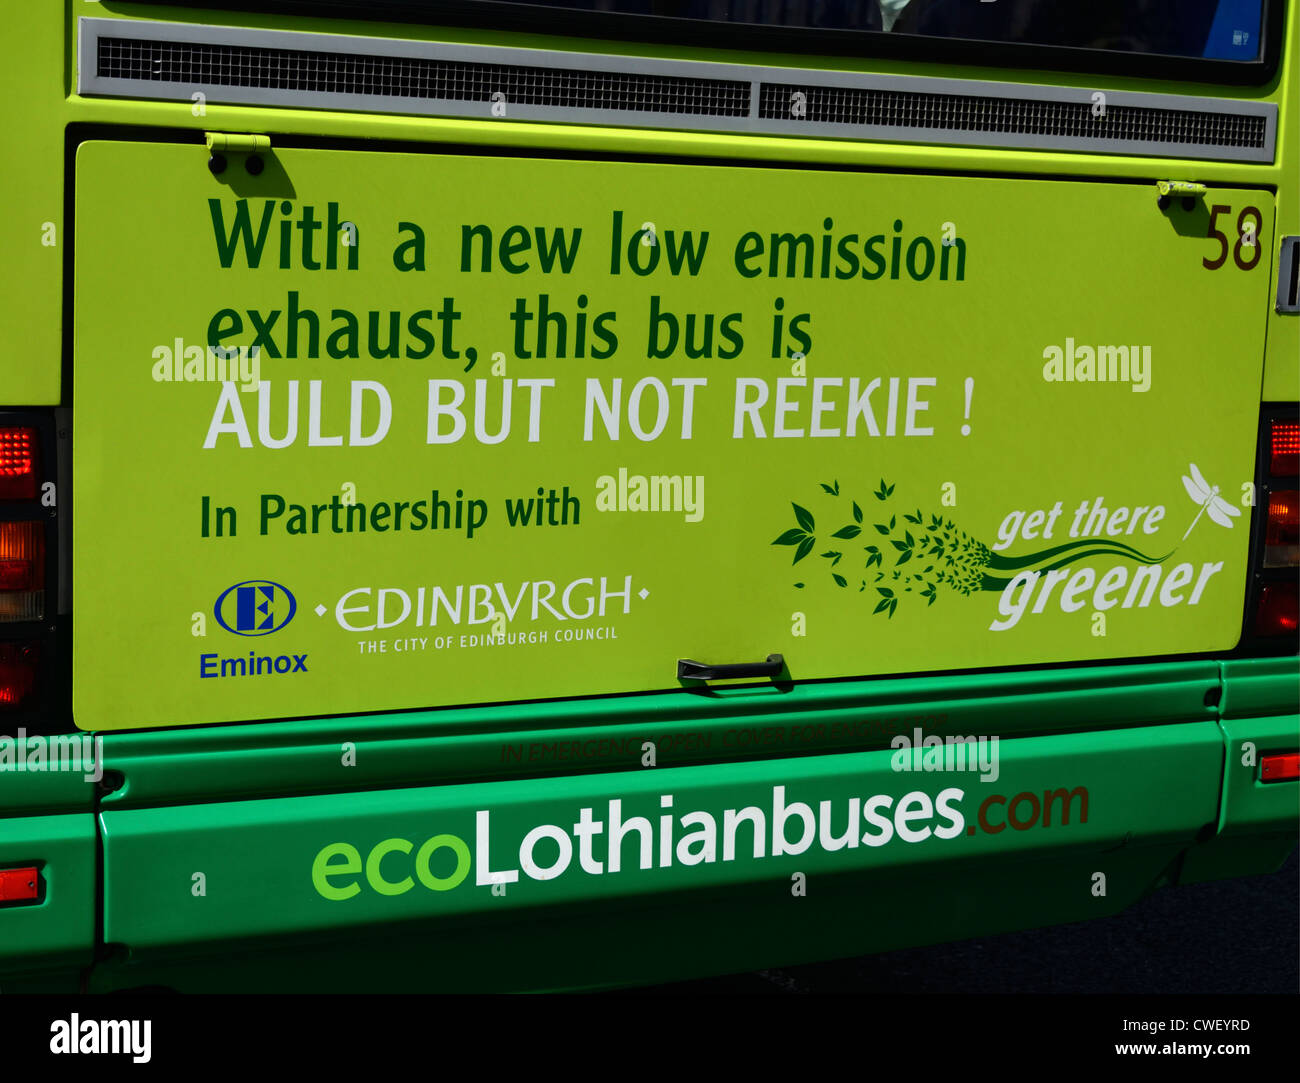 auld-but-not-reekie-!-slogan-on-edinburgh-bus-CWEYRD.jpg